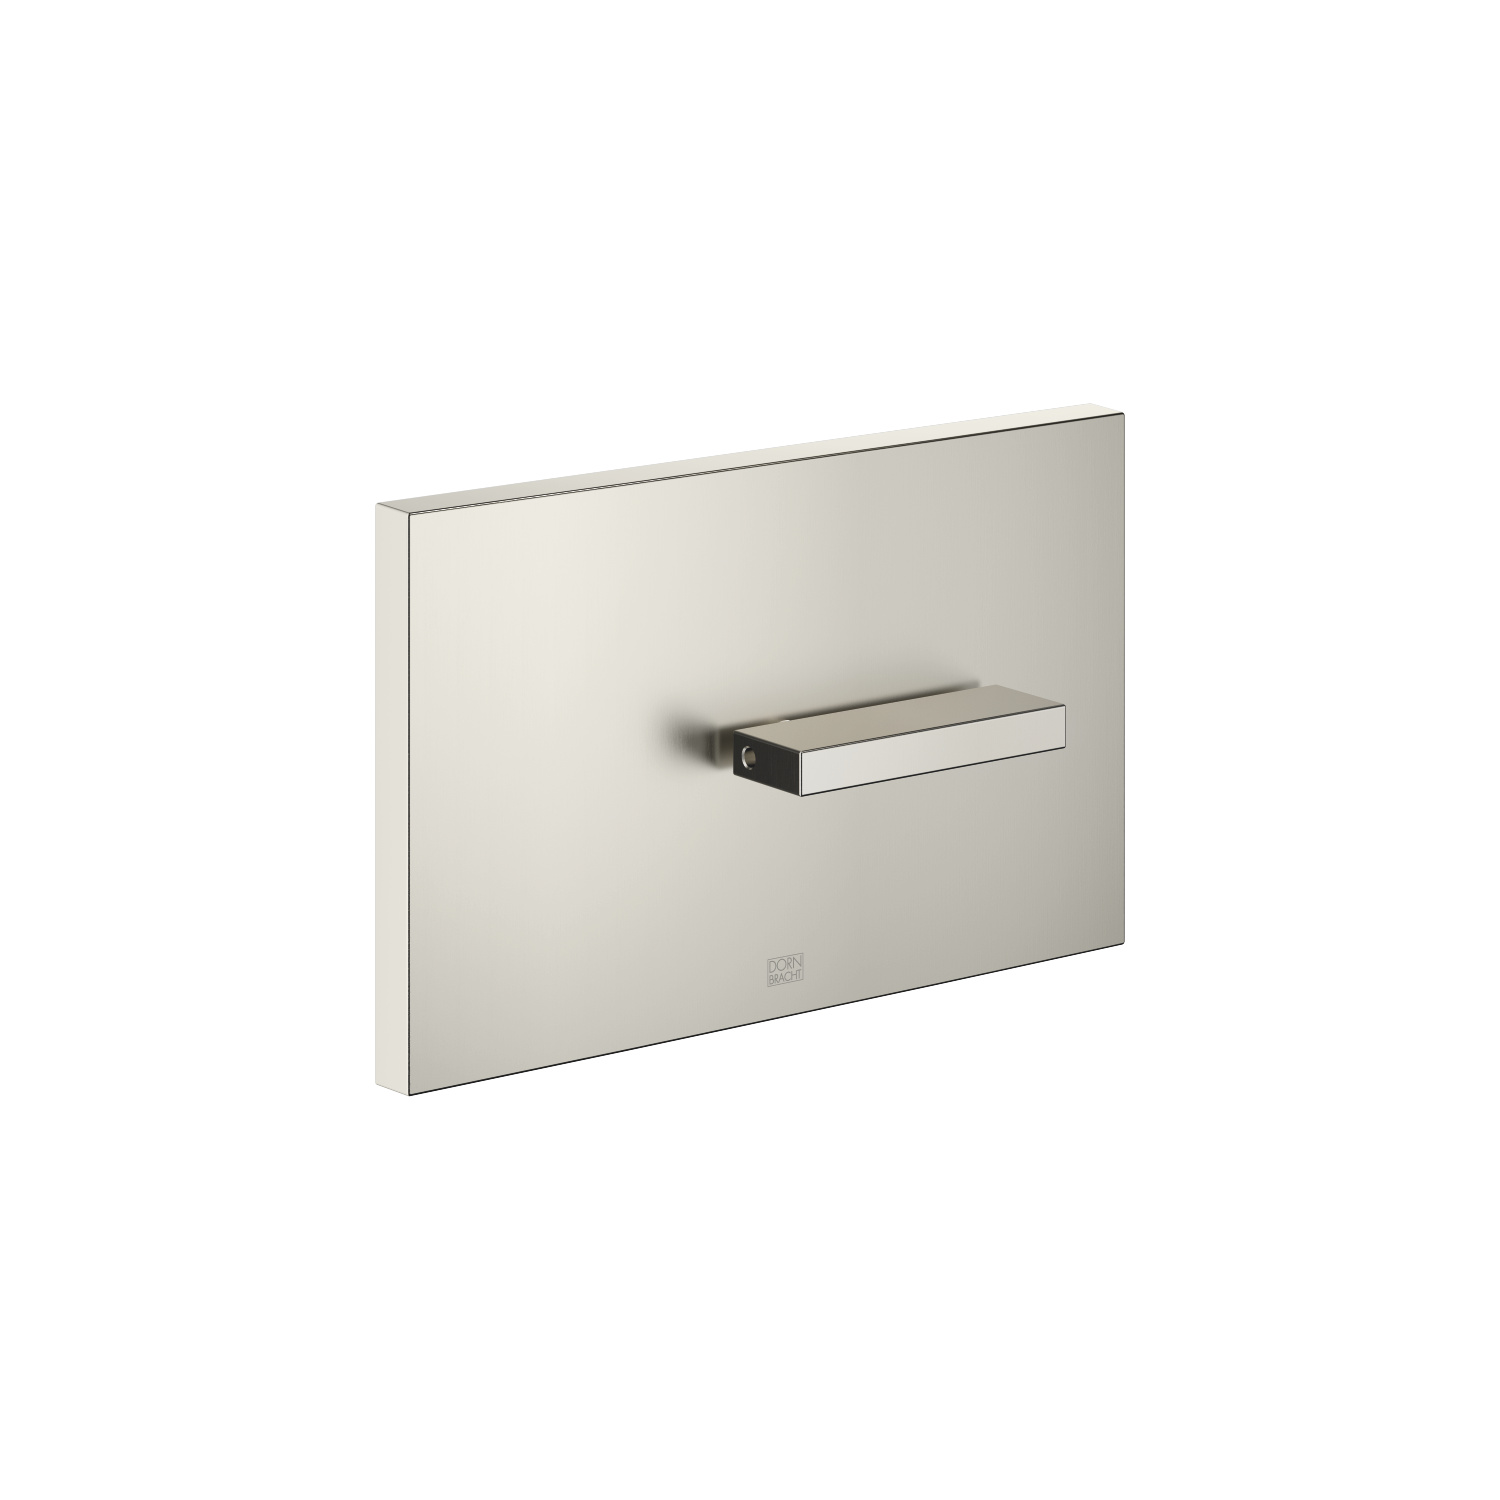 Cover plate for the concealed WC cistern made by TeCe - platinum matt